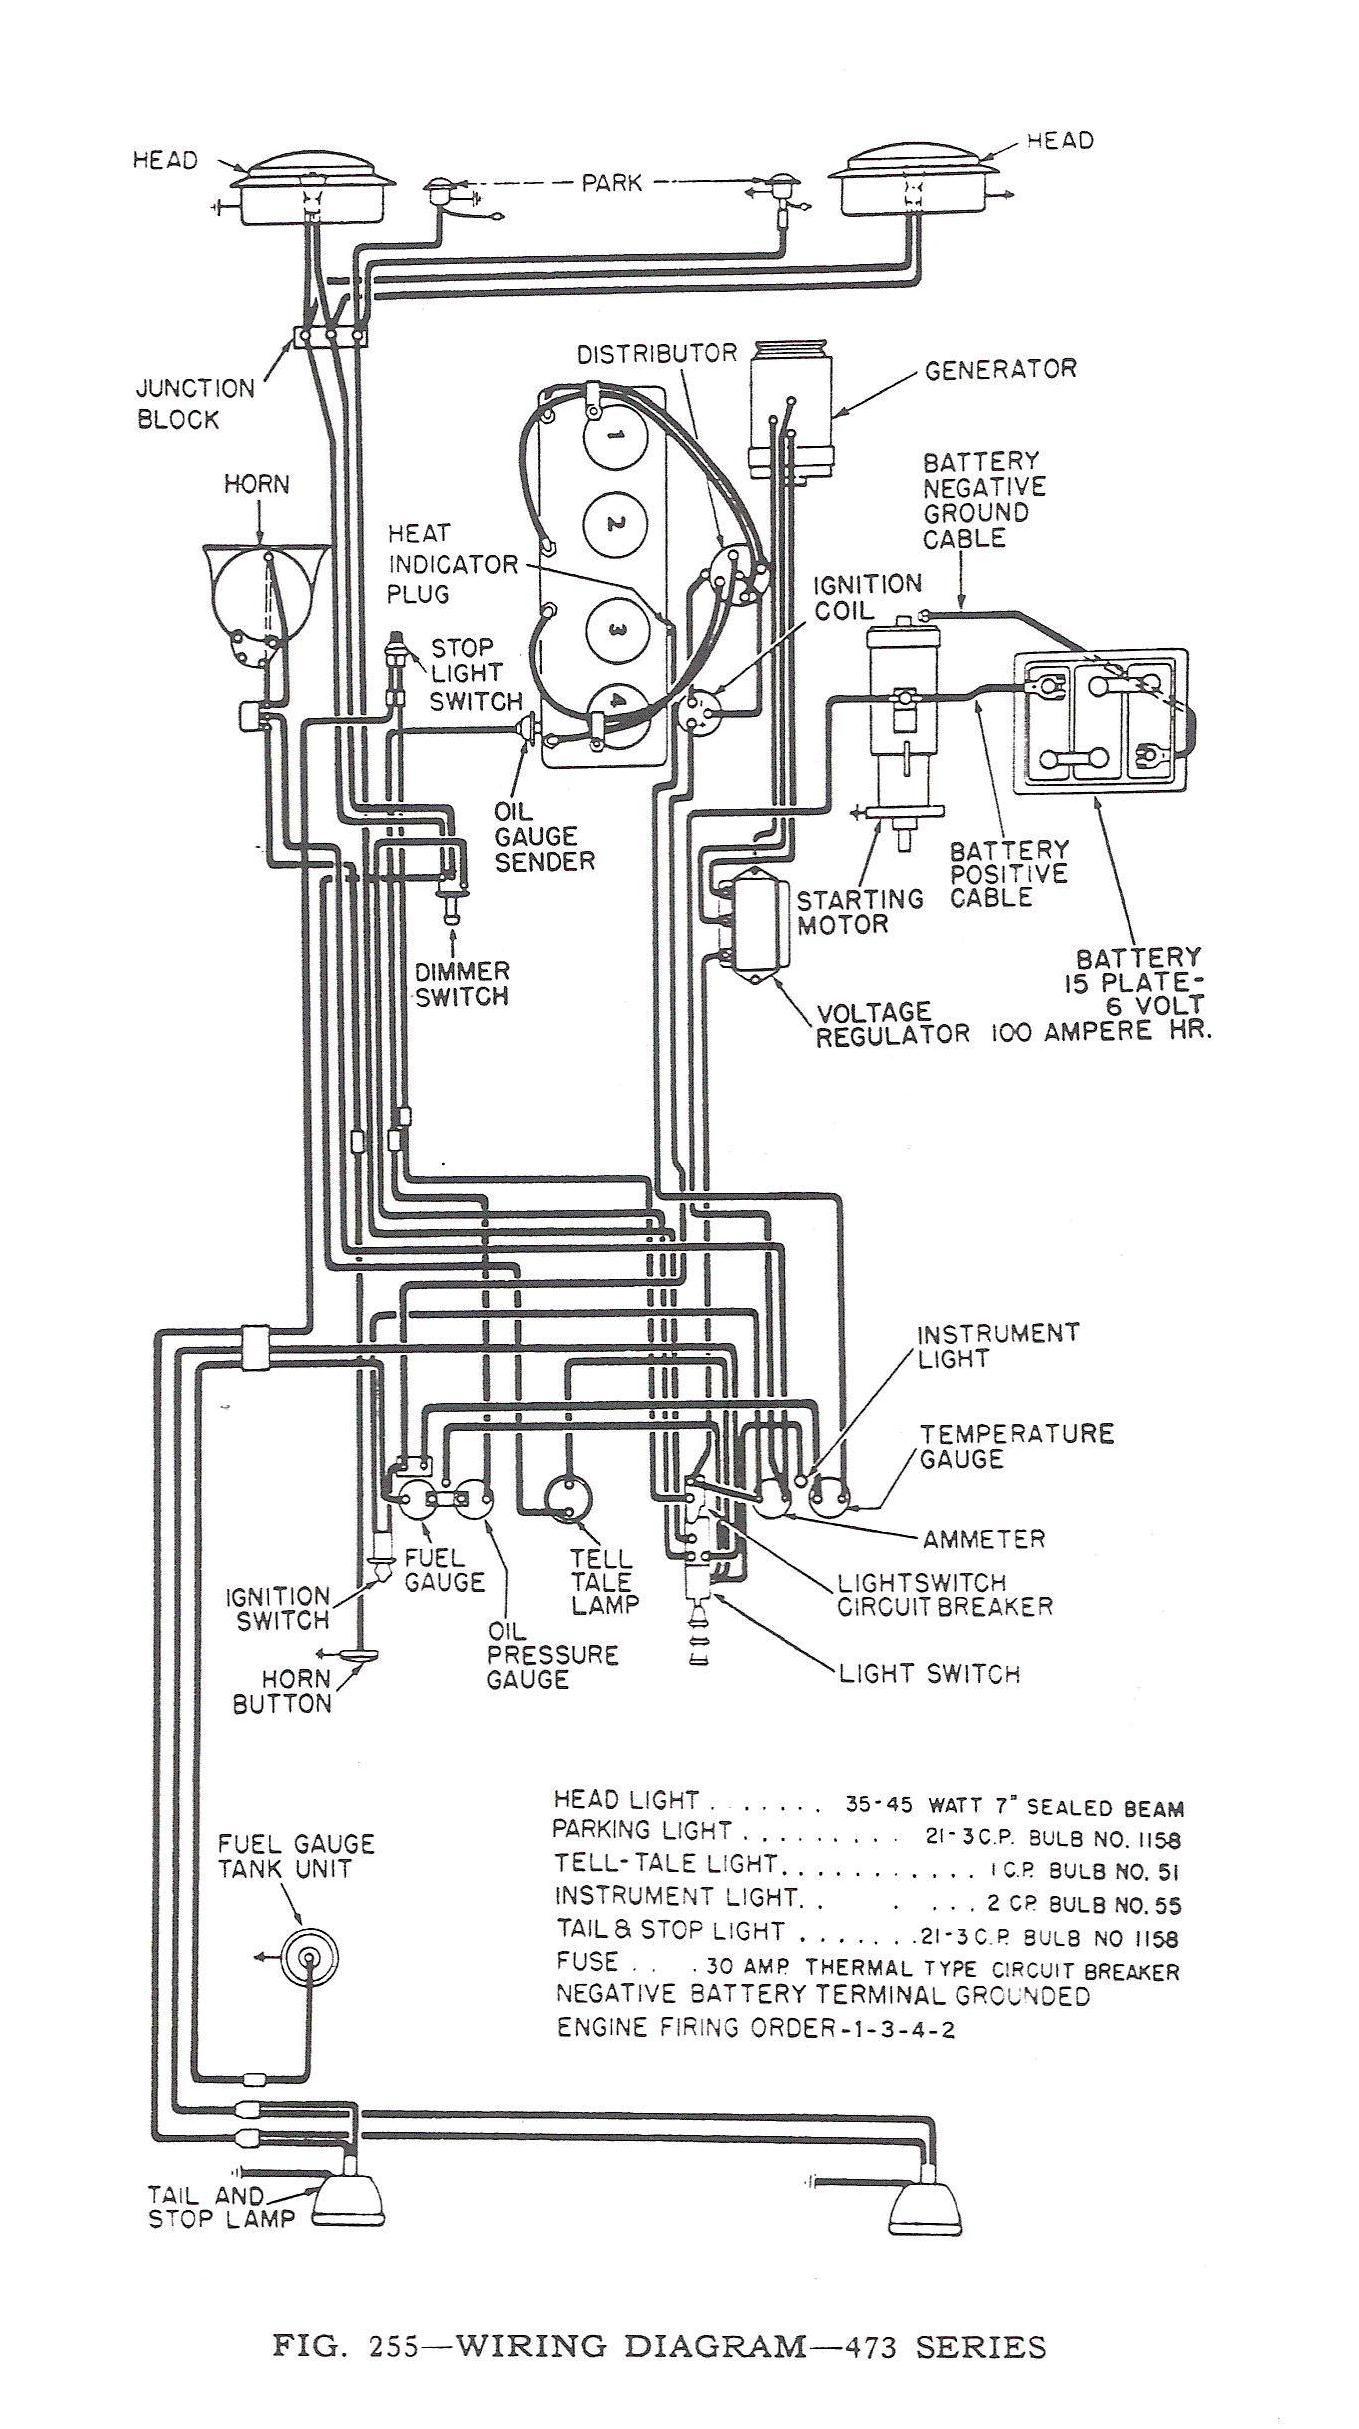 Hastings Wiring Diagrams Library 24 Volt Trolling Motor Battery Moreover Diagram 1952 Jeep Series 473 Google Search